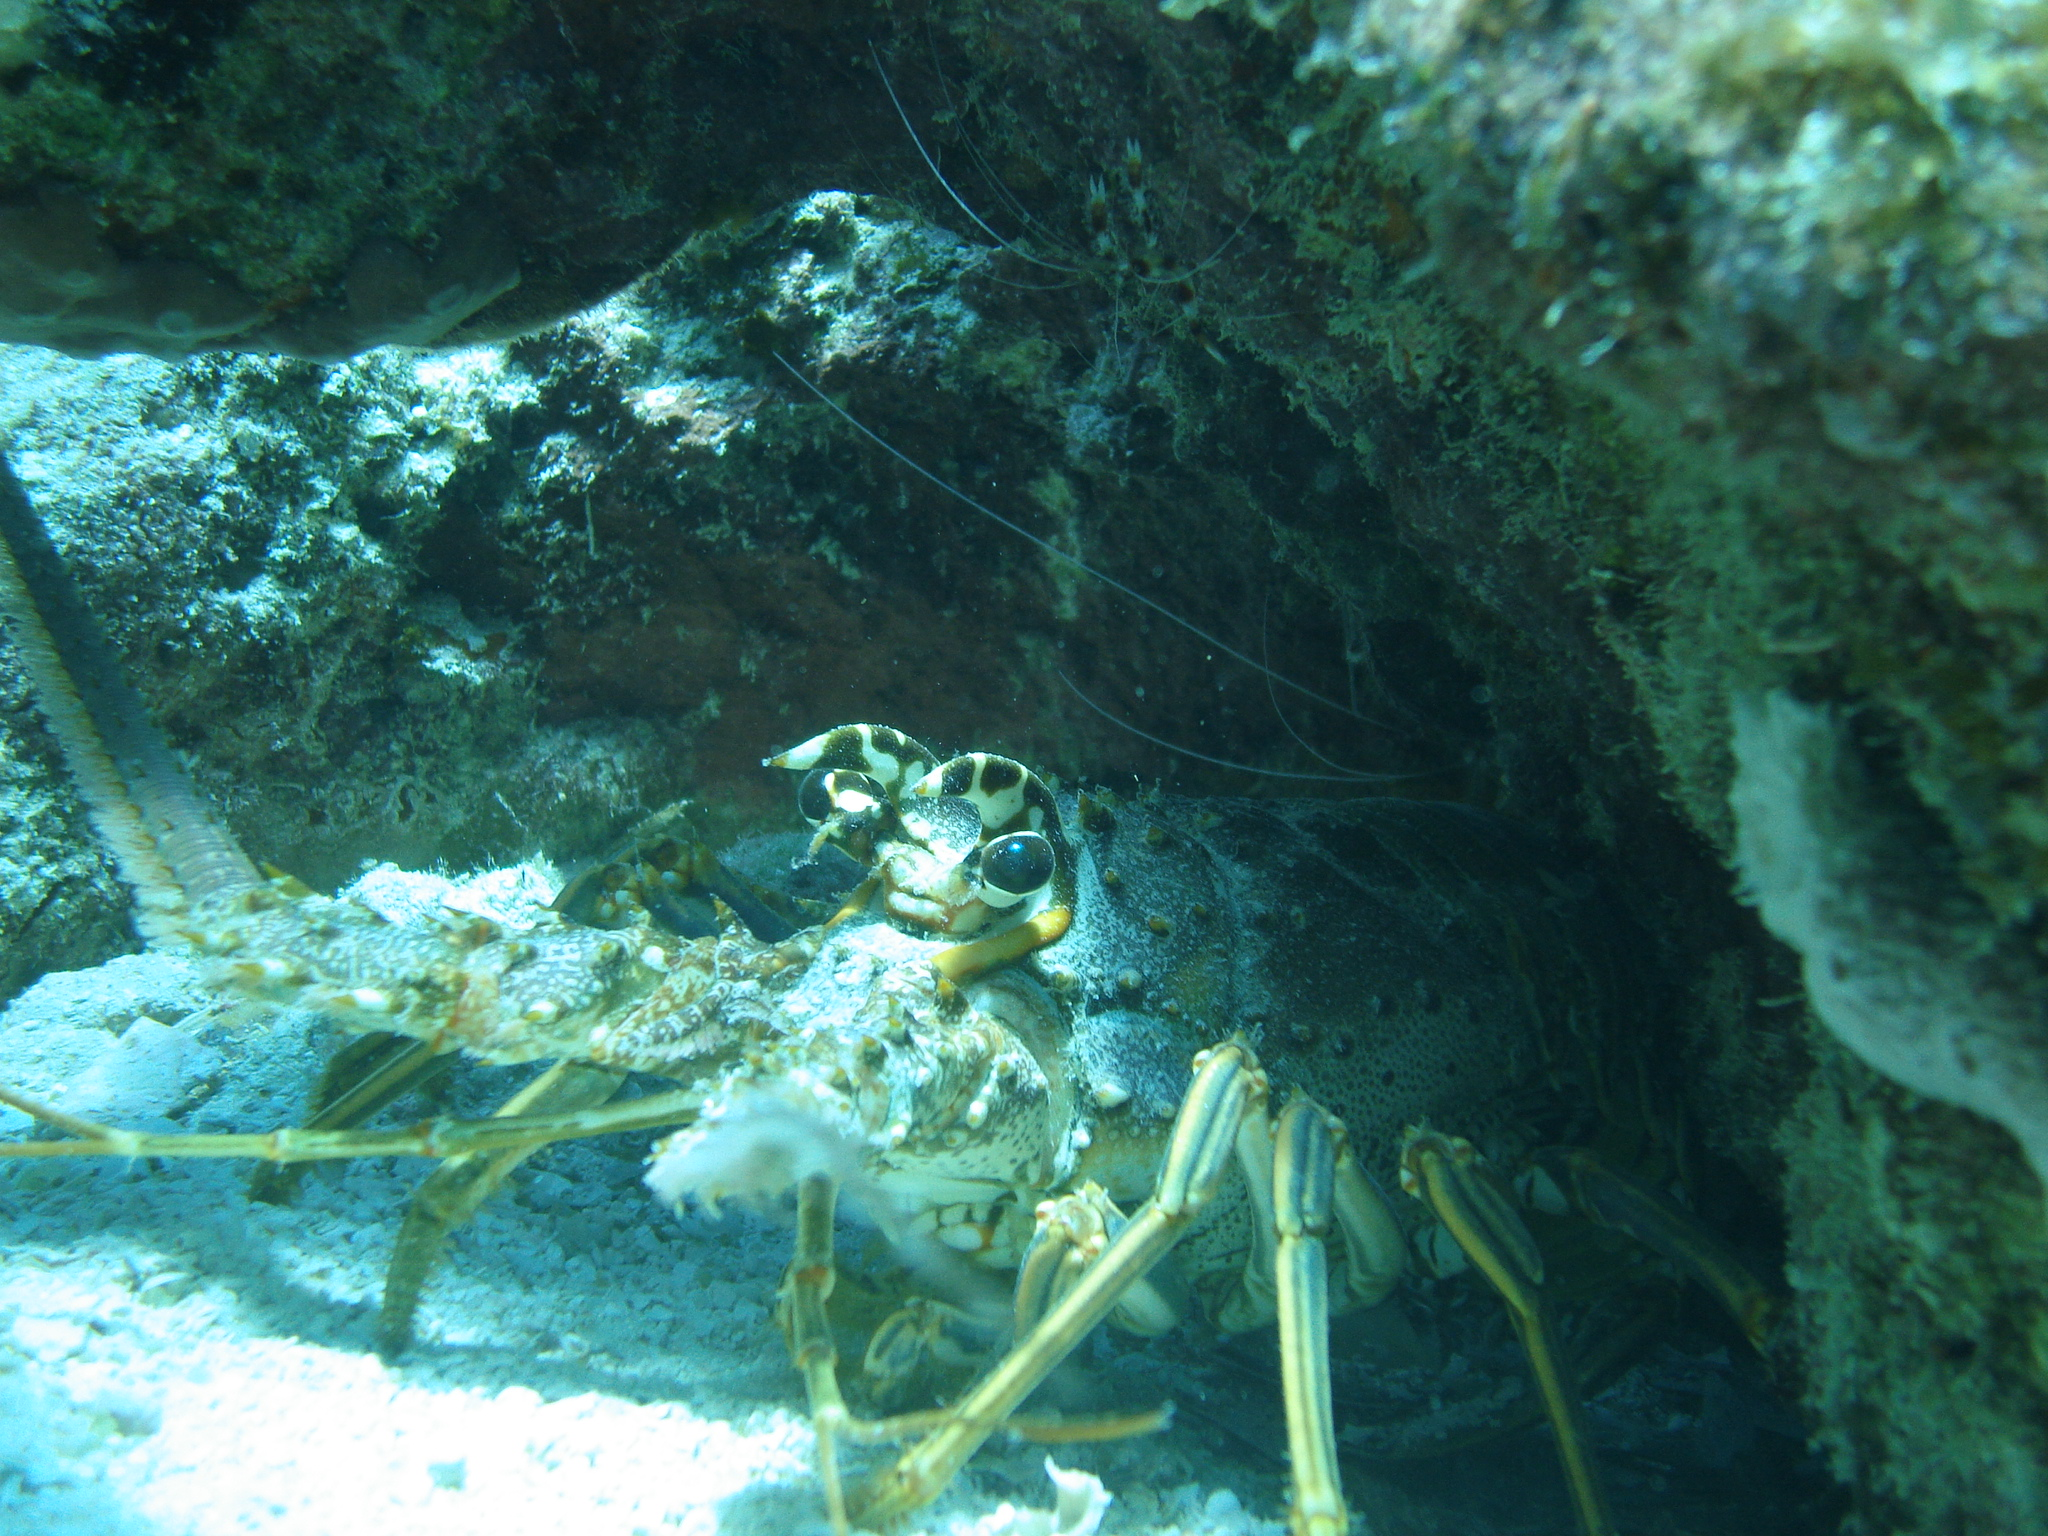 A spiny lobster emerges from under a crevice in a coral reef